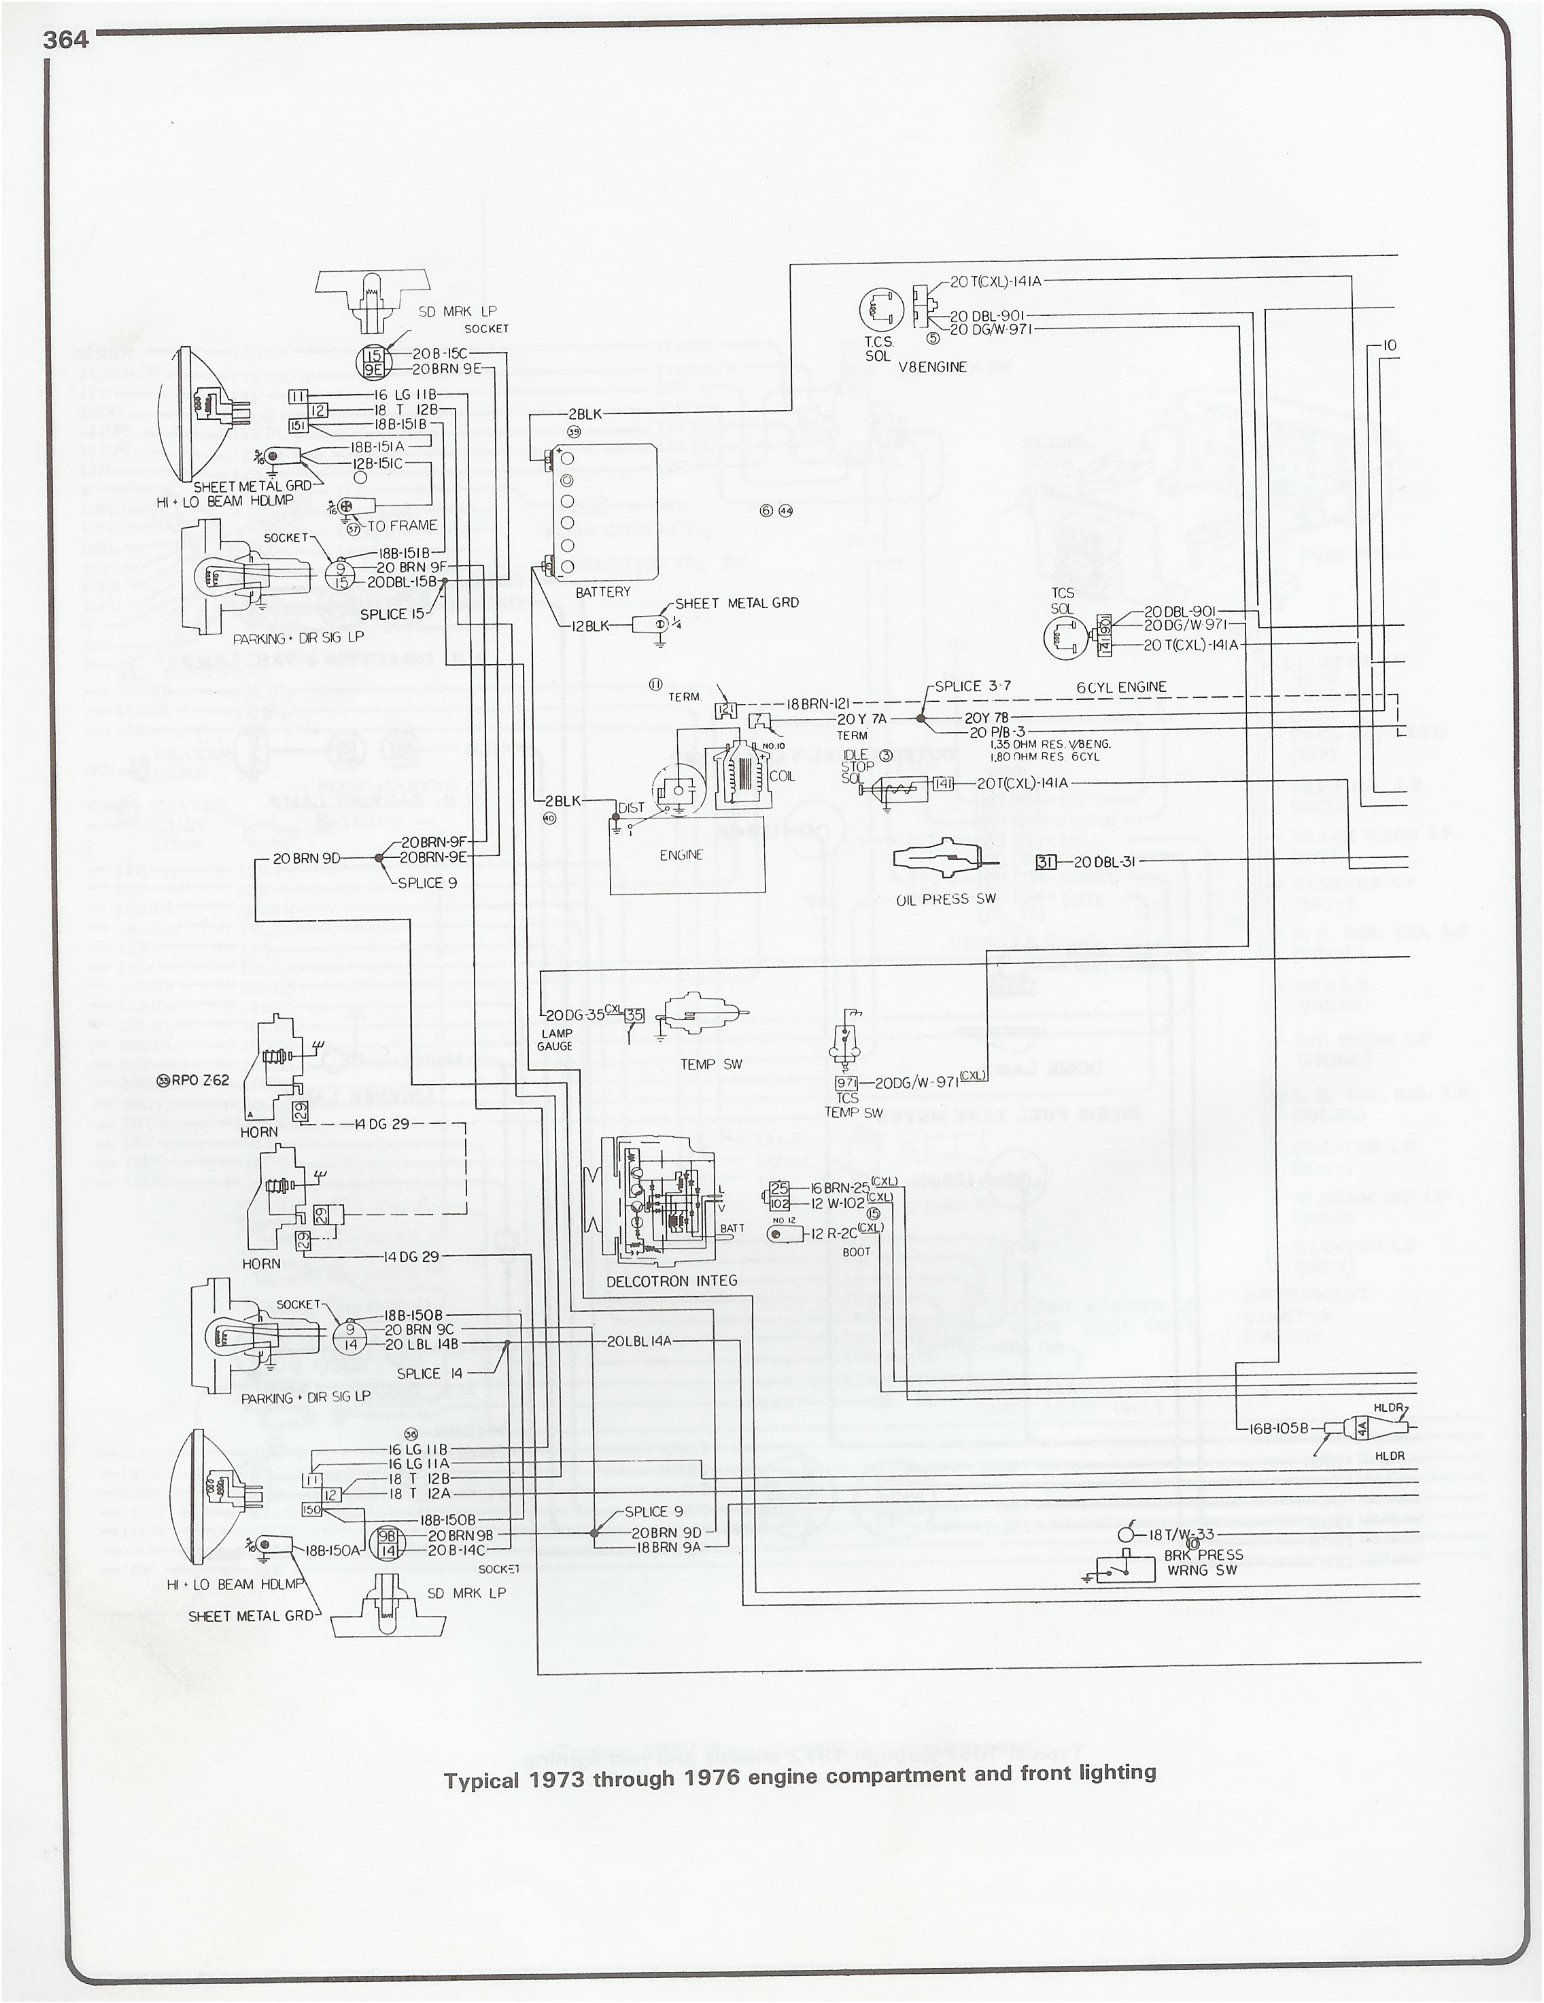 K20 Fuse Block Diagram